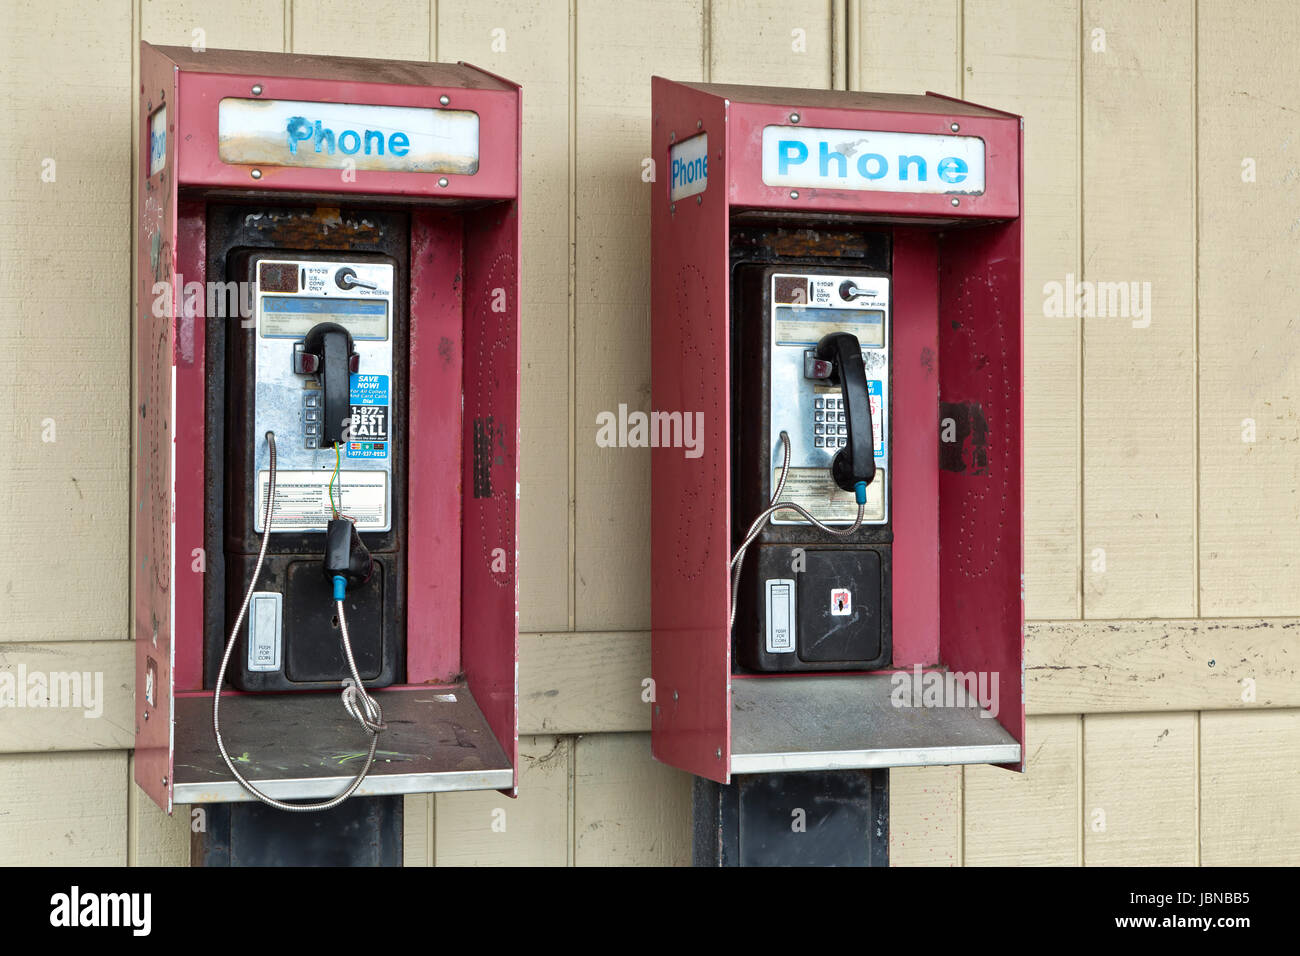 Abandoned coin operated public pay telephone with coin release slot. - Stock Image